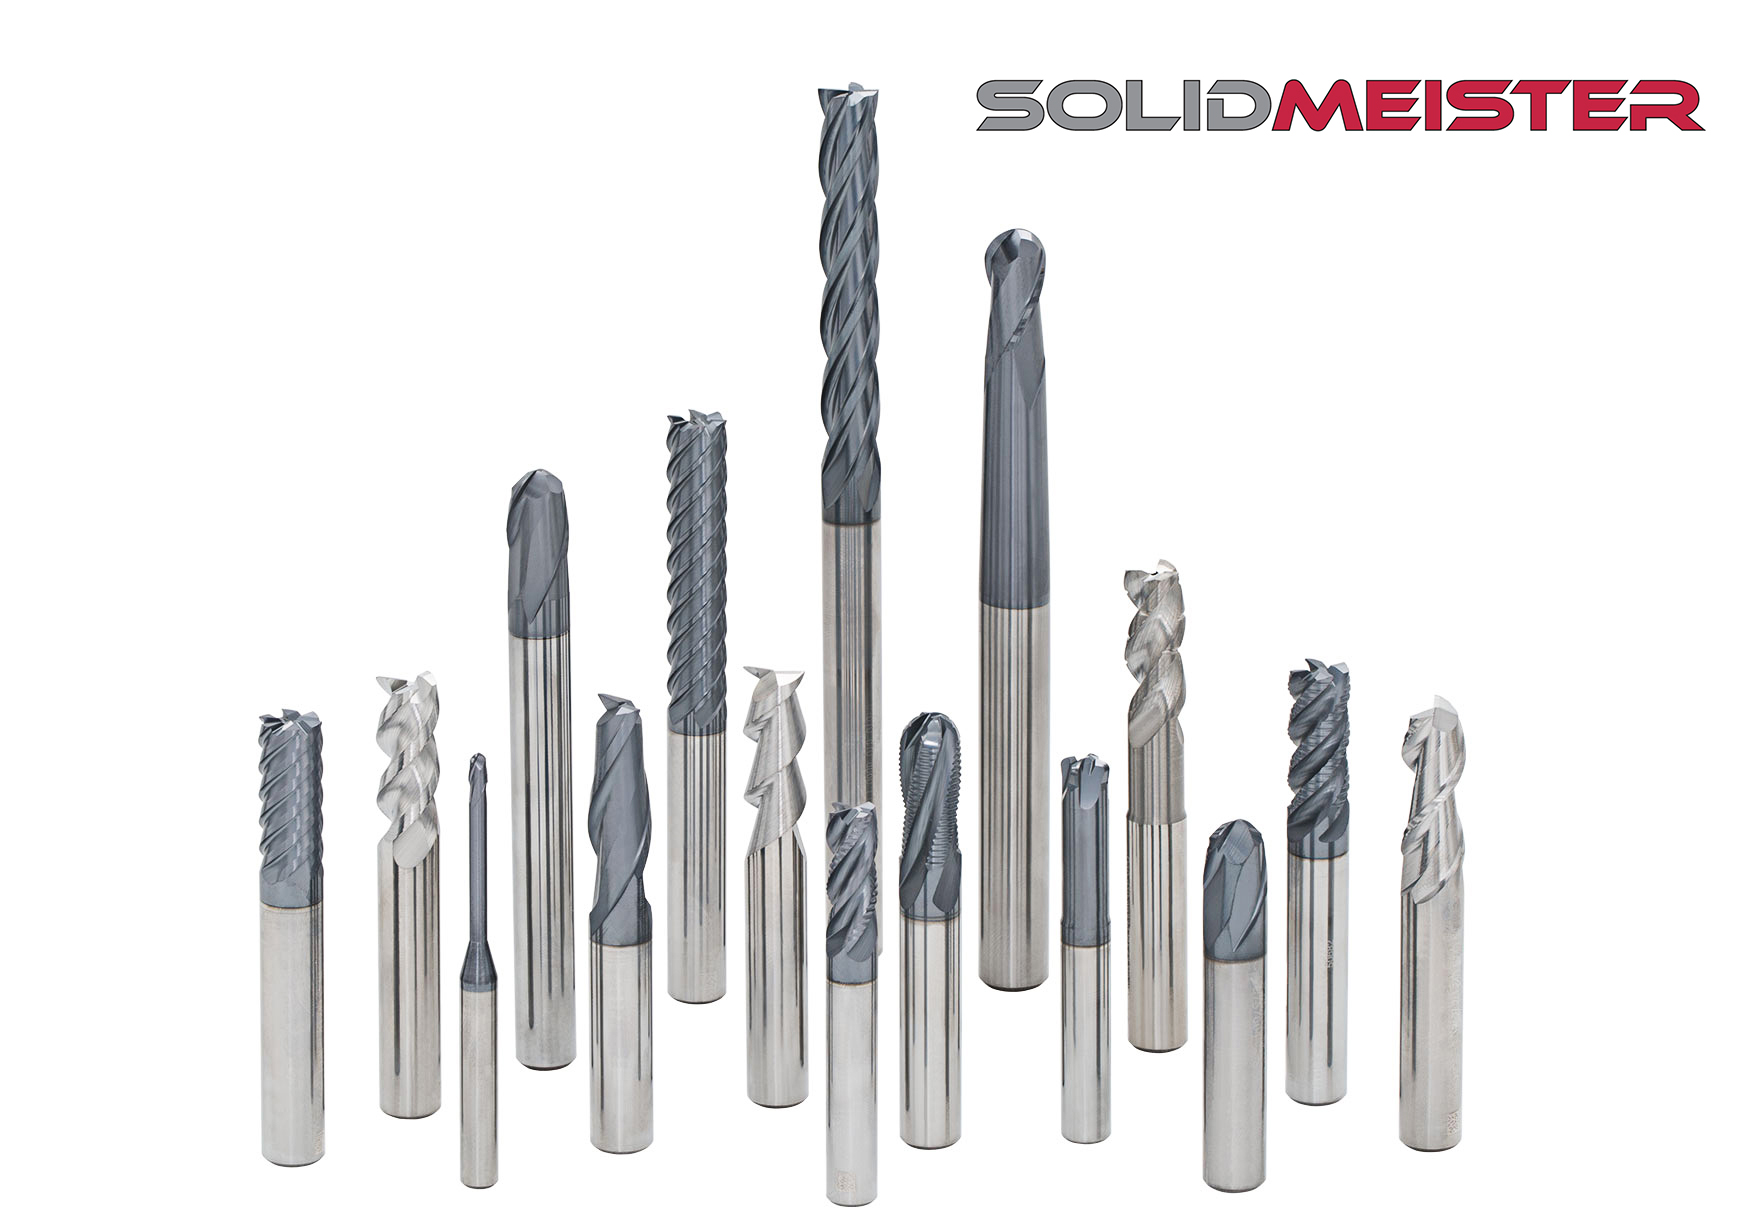 solidmeister_group